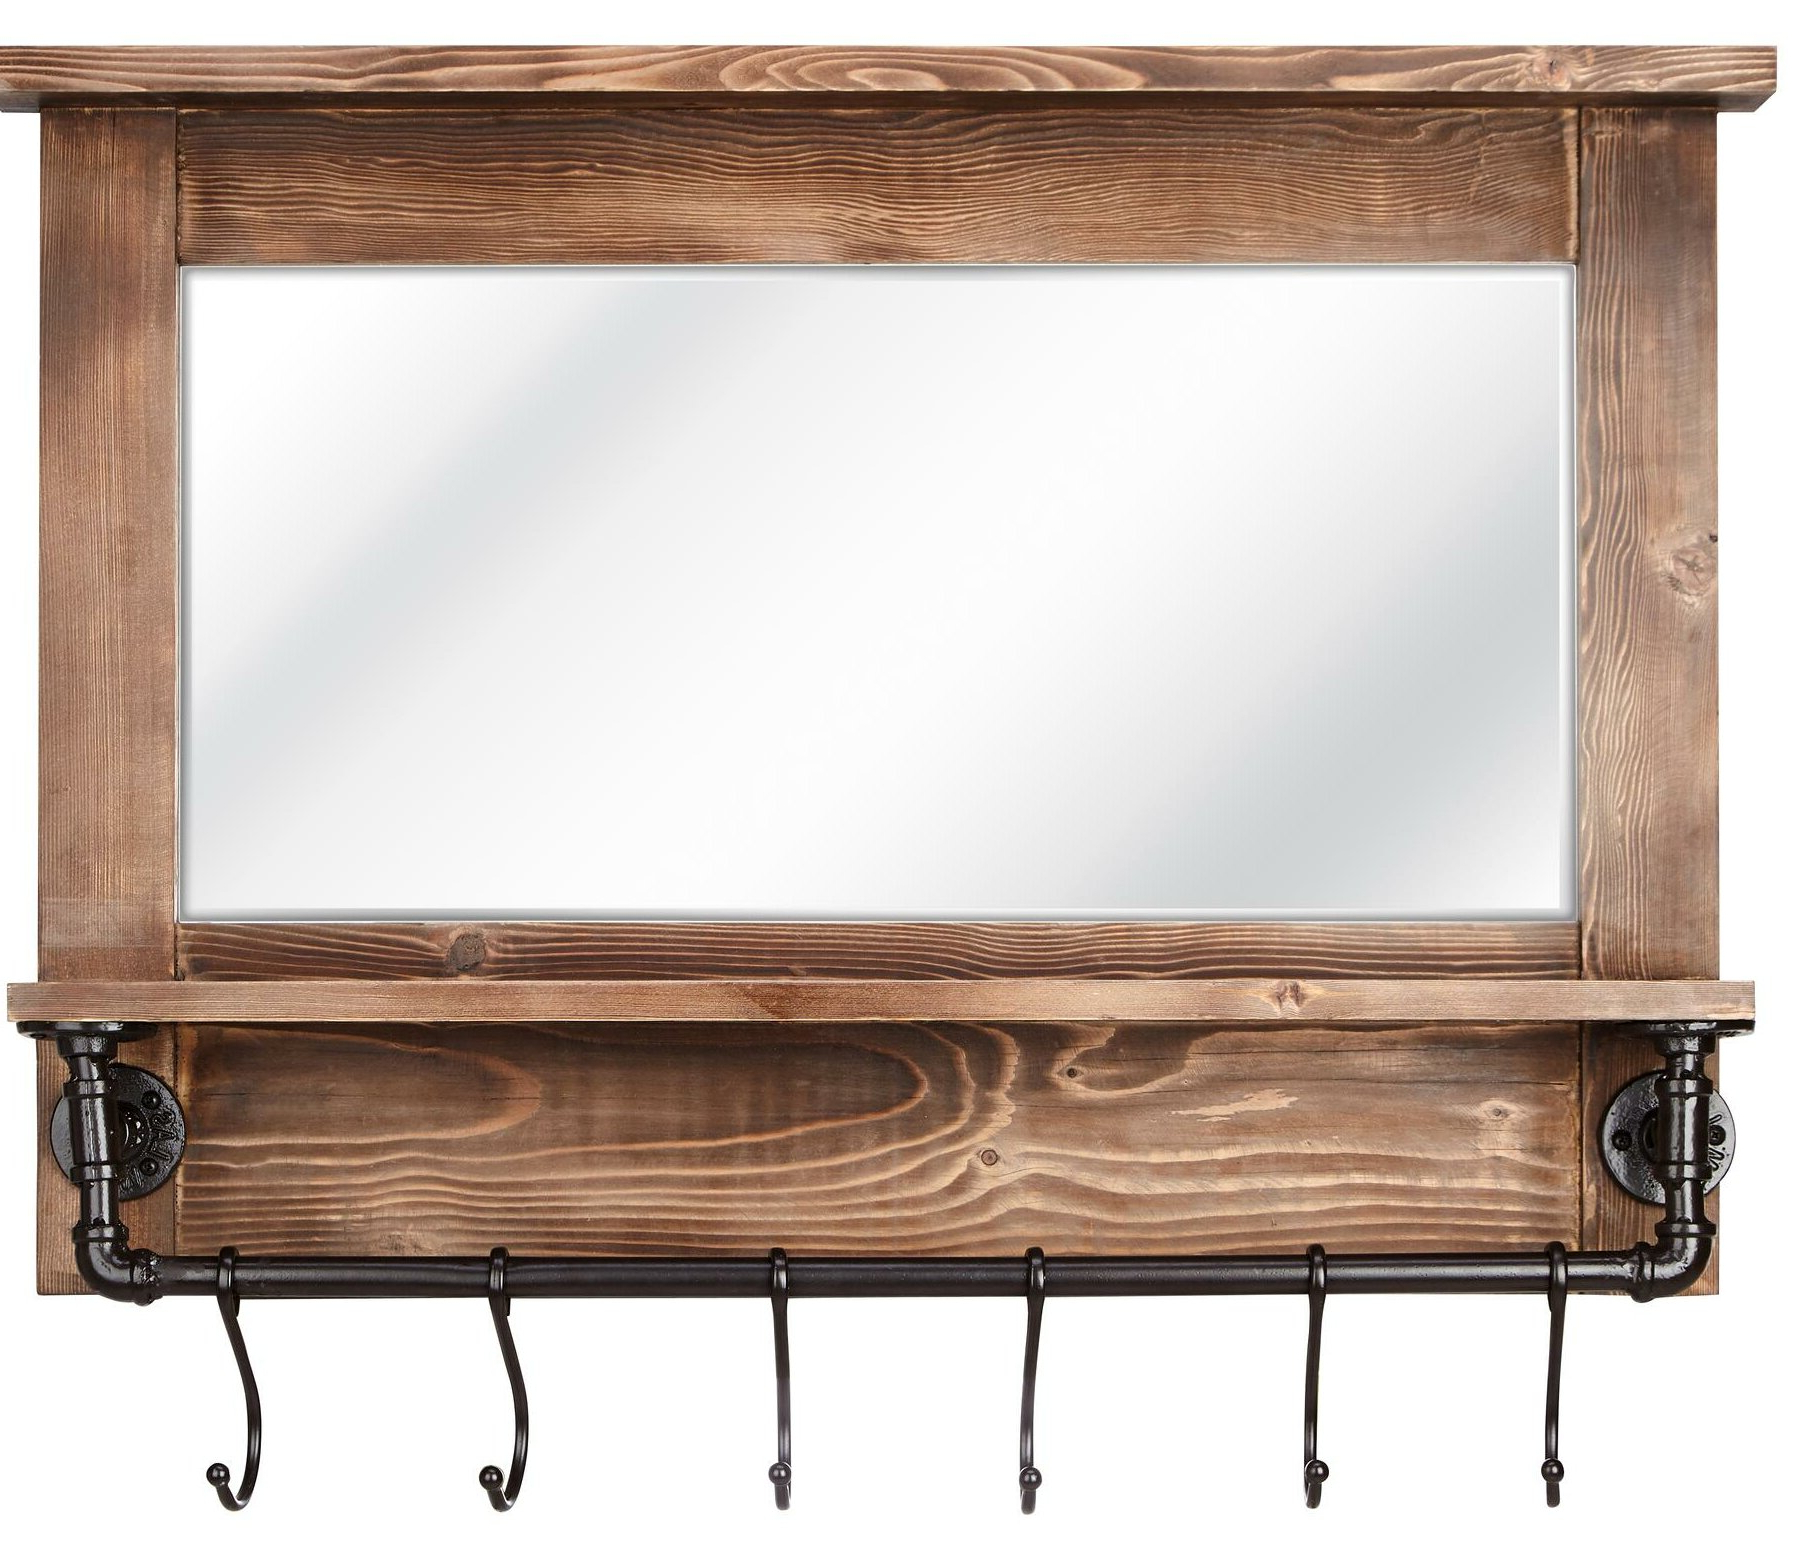 Hallas Wall Organizer Mirrors Pertaining To Well Known Gracie Oaks Carrico Rustic Beveled With Shelves Wall Mirror (View 6 of 20)